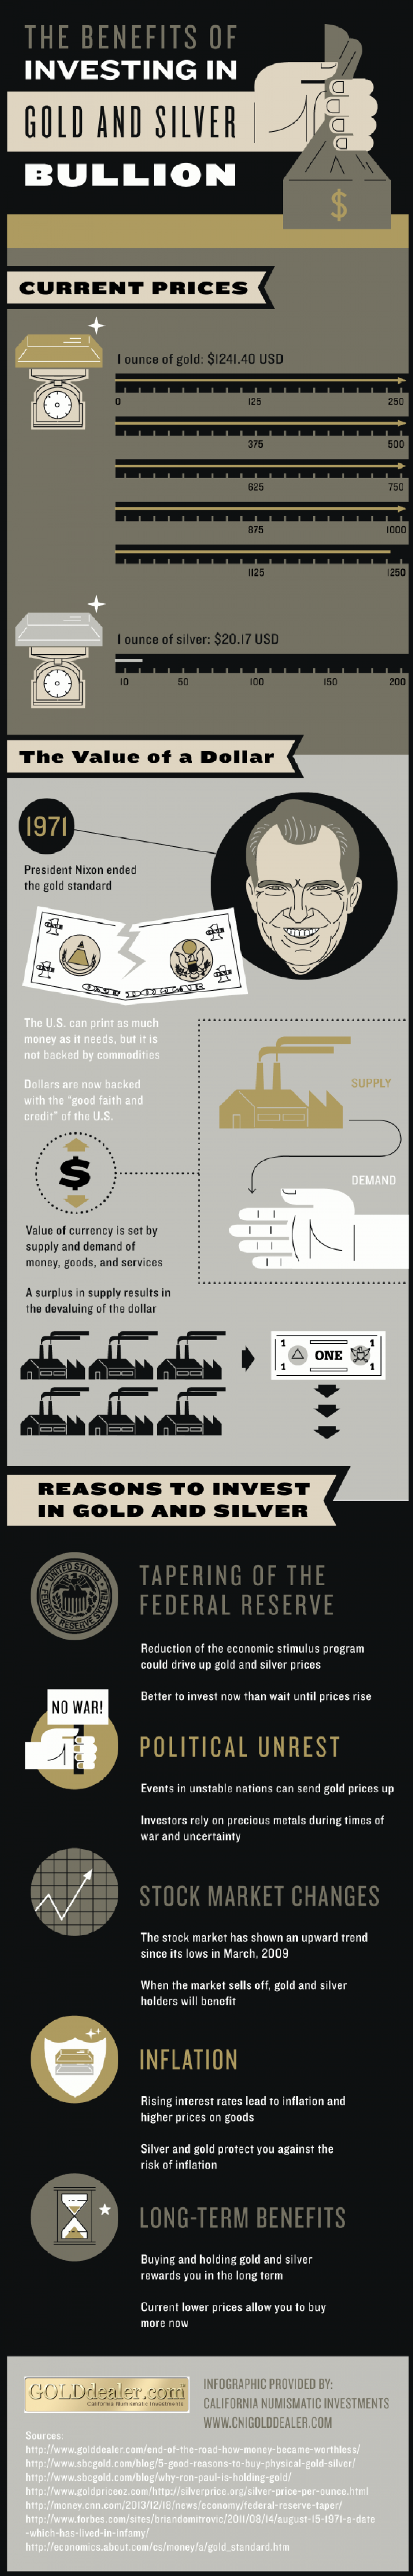 The Benefits of Investing in Gold and Silver Bullion  Infographic